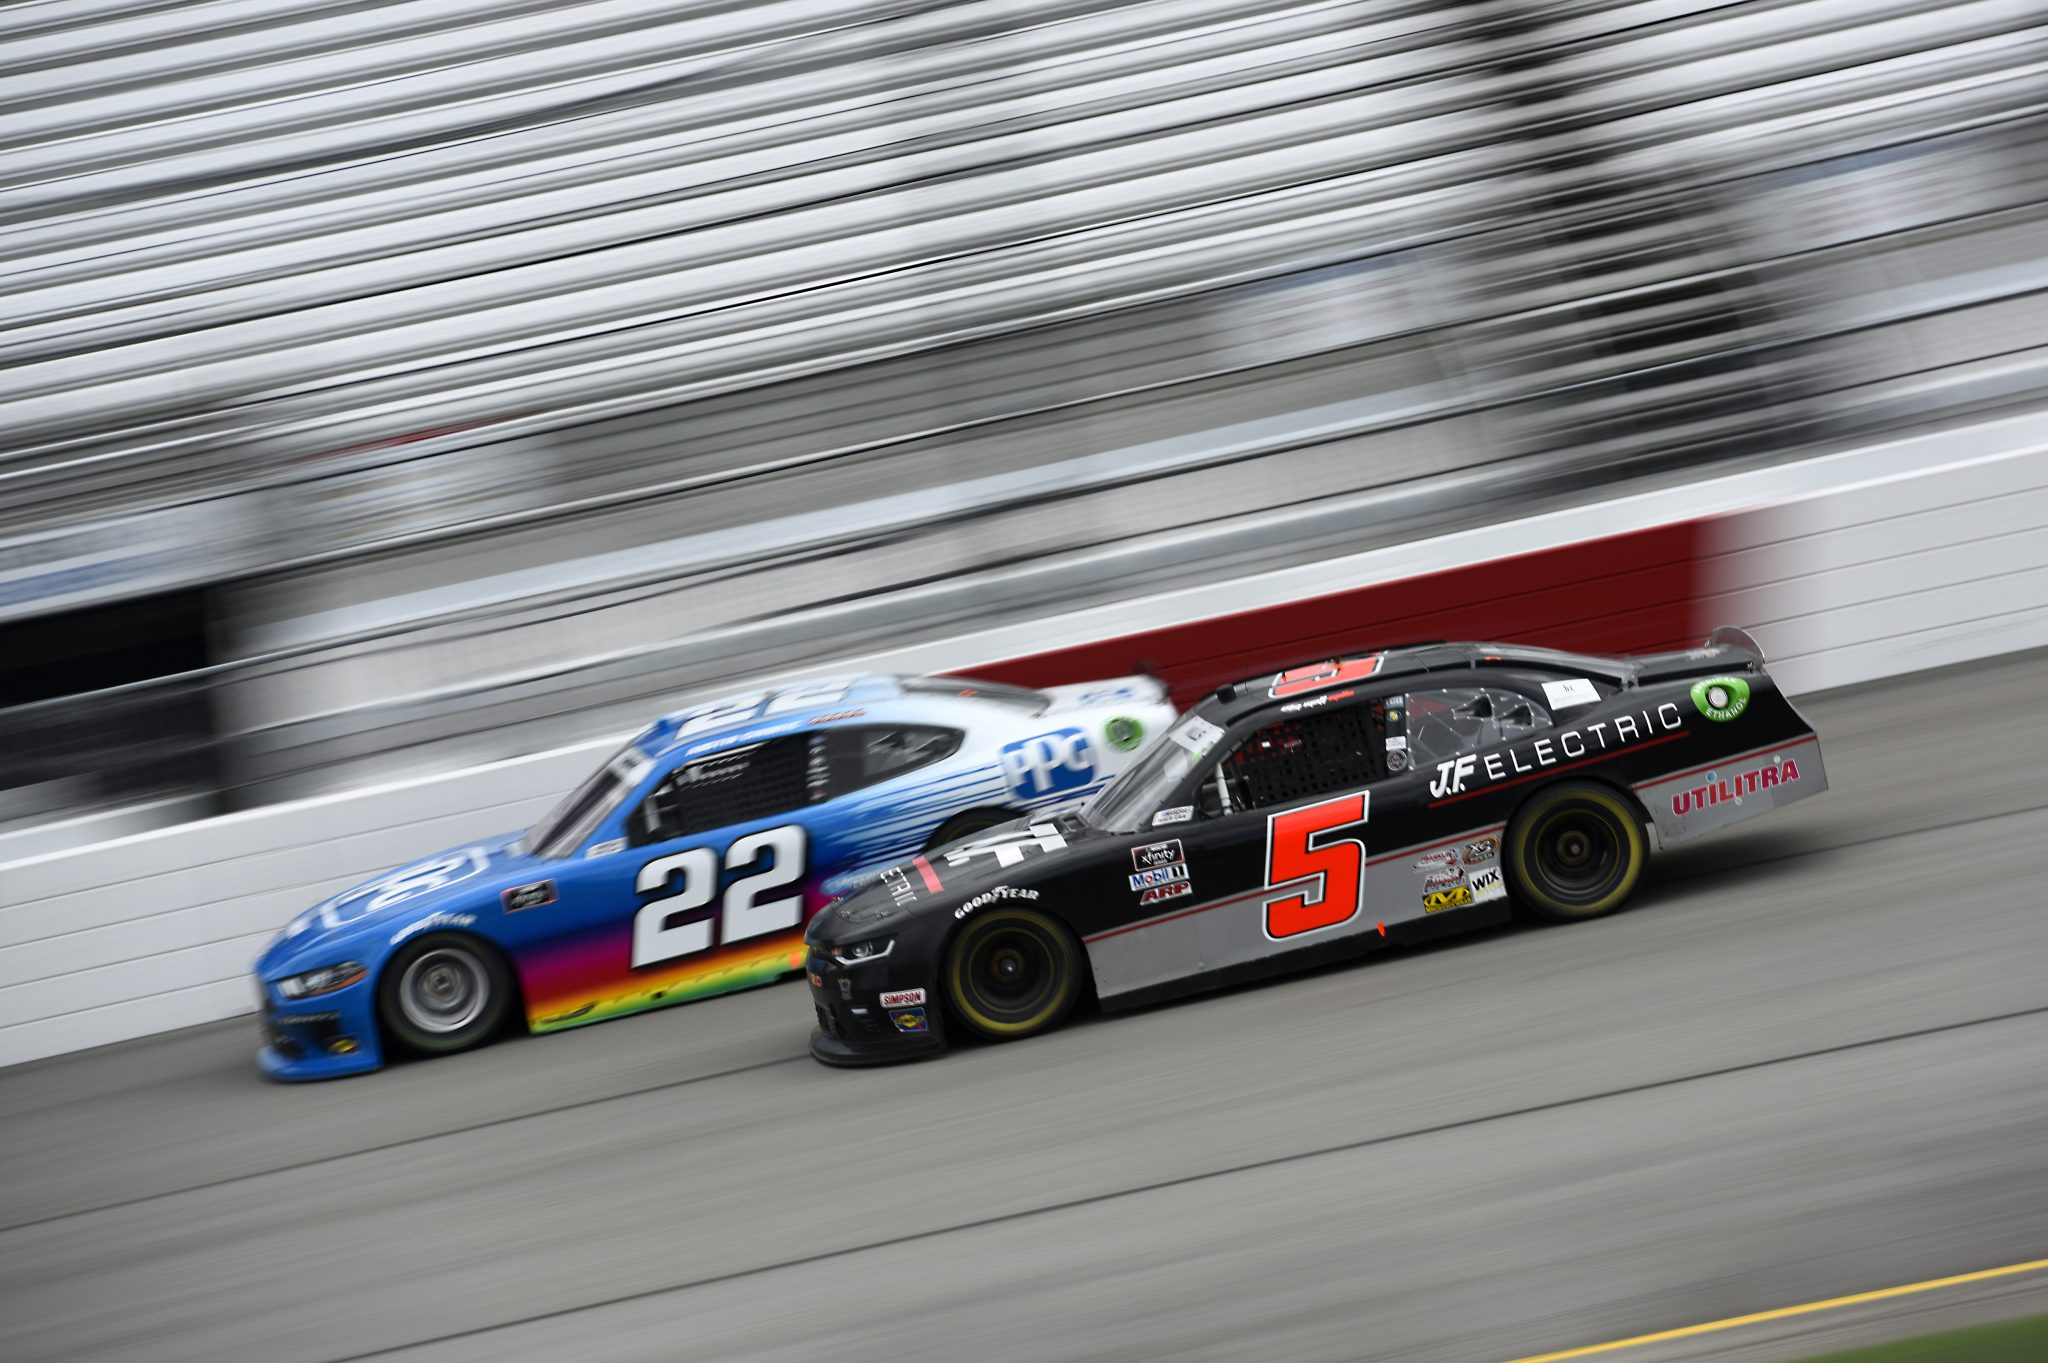 RICHMOND, VIRGINIA - SEPTEMBER 12: Matt Mills, driver of the #5 J.F. Electric Chevrolet, and Austin Cindric, driver of the #22 PPG Ford, race during the NASCAR Xfinity Series Virginia is for Racing Lovers 250 at Richmond Raceway on September 12, 2020 in Richmond, Virginia. (Photo by Jared C. Tilton/Getty Images) | Getty Images